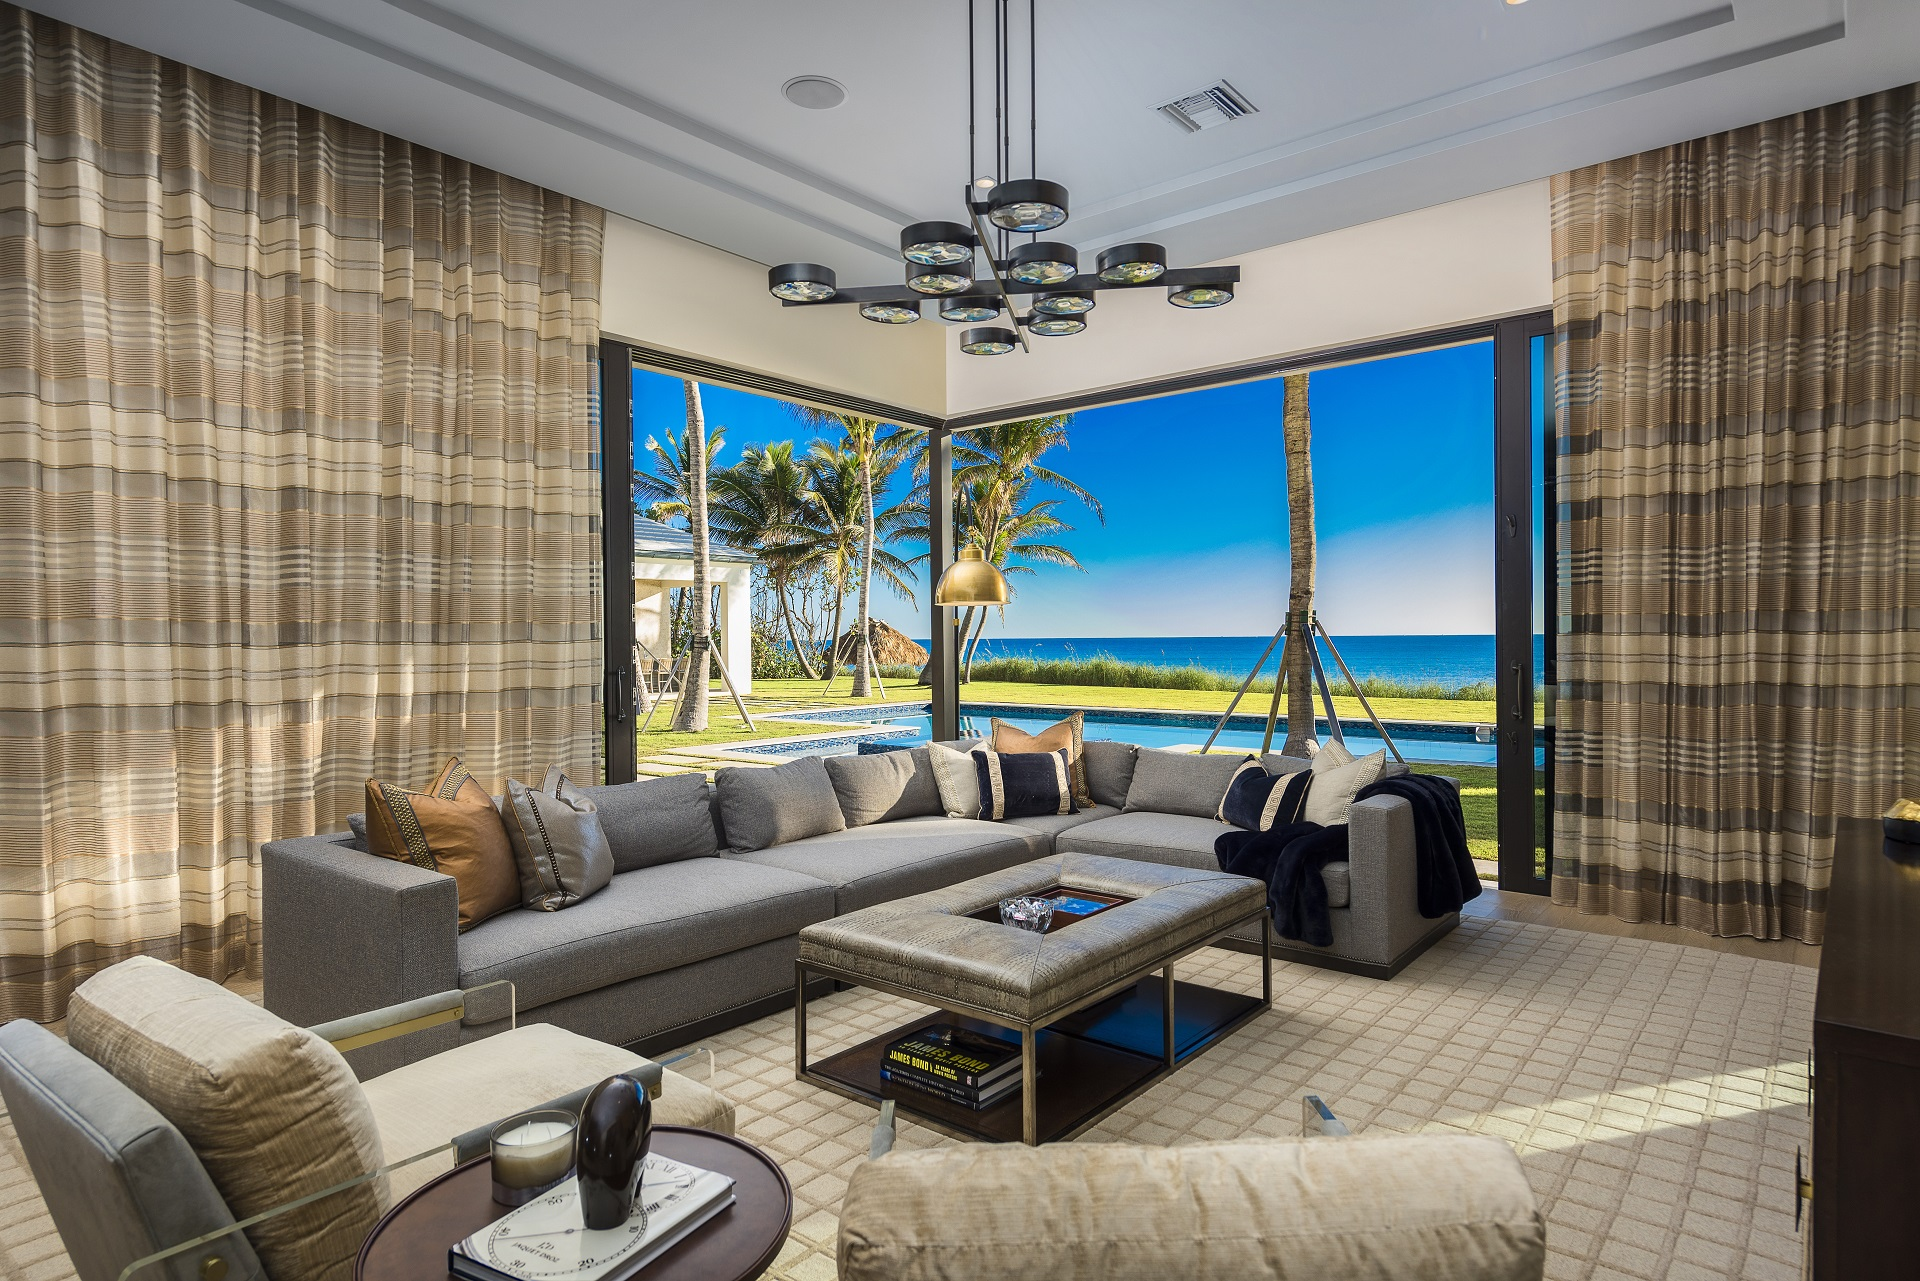 Aremac photography - How to take interior photos for real estate ...